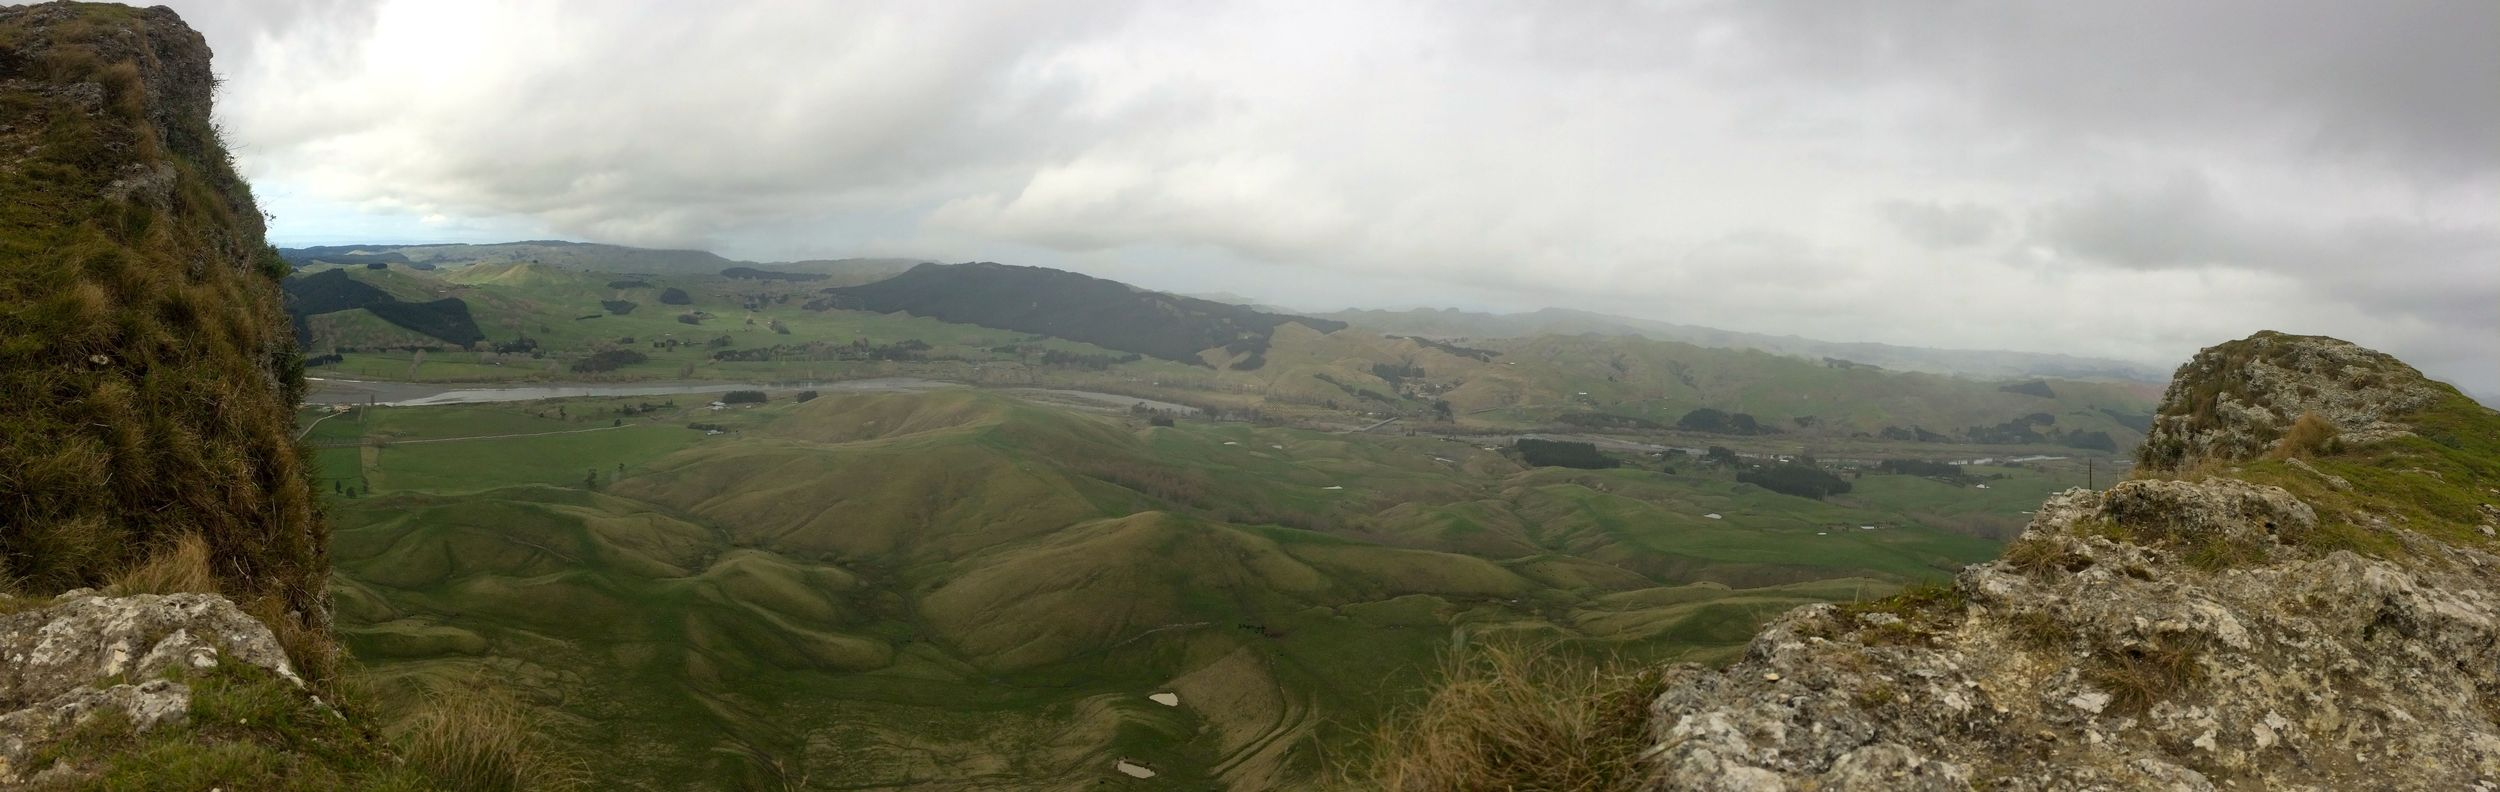 Te Mata peak. Looking down on Craggy Range winery. SUPER steep.